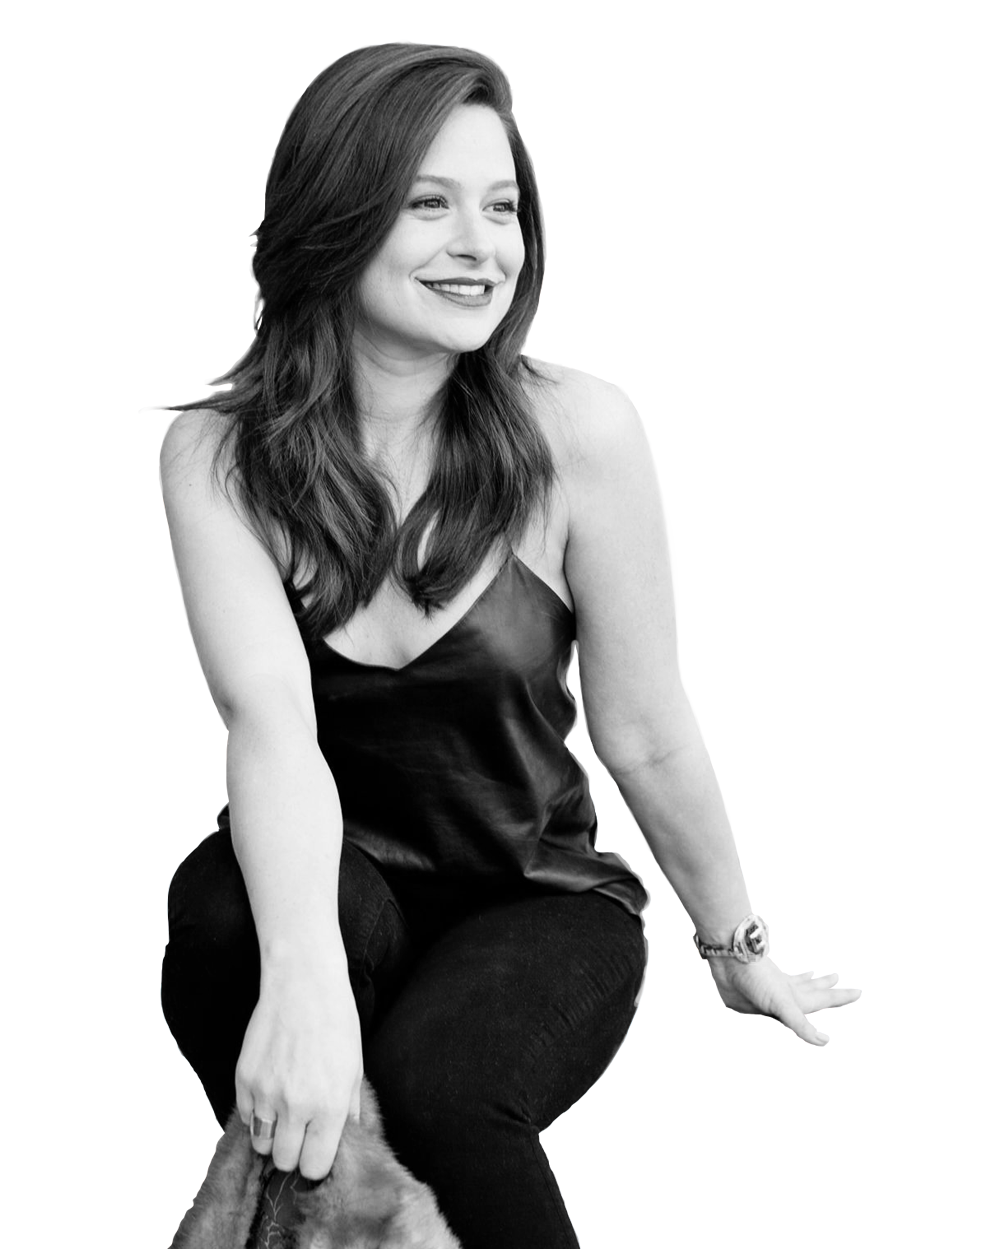 KATIE LOWES - On the value of storytelling, the importance of consistency, and how it's all a mental game.